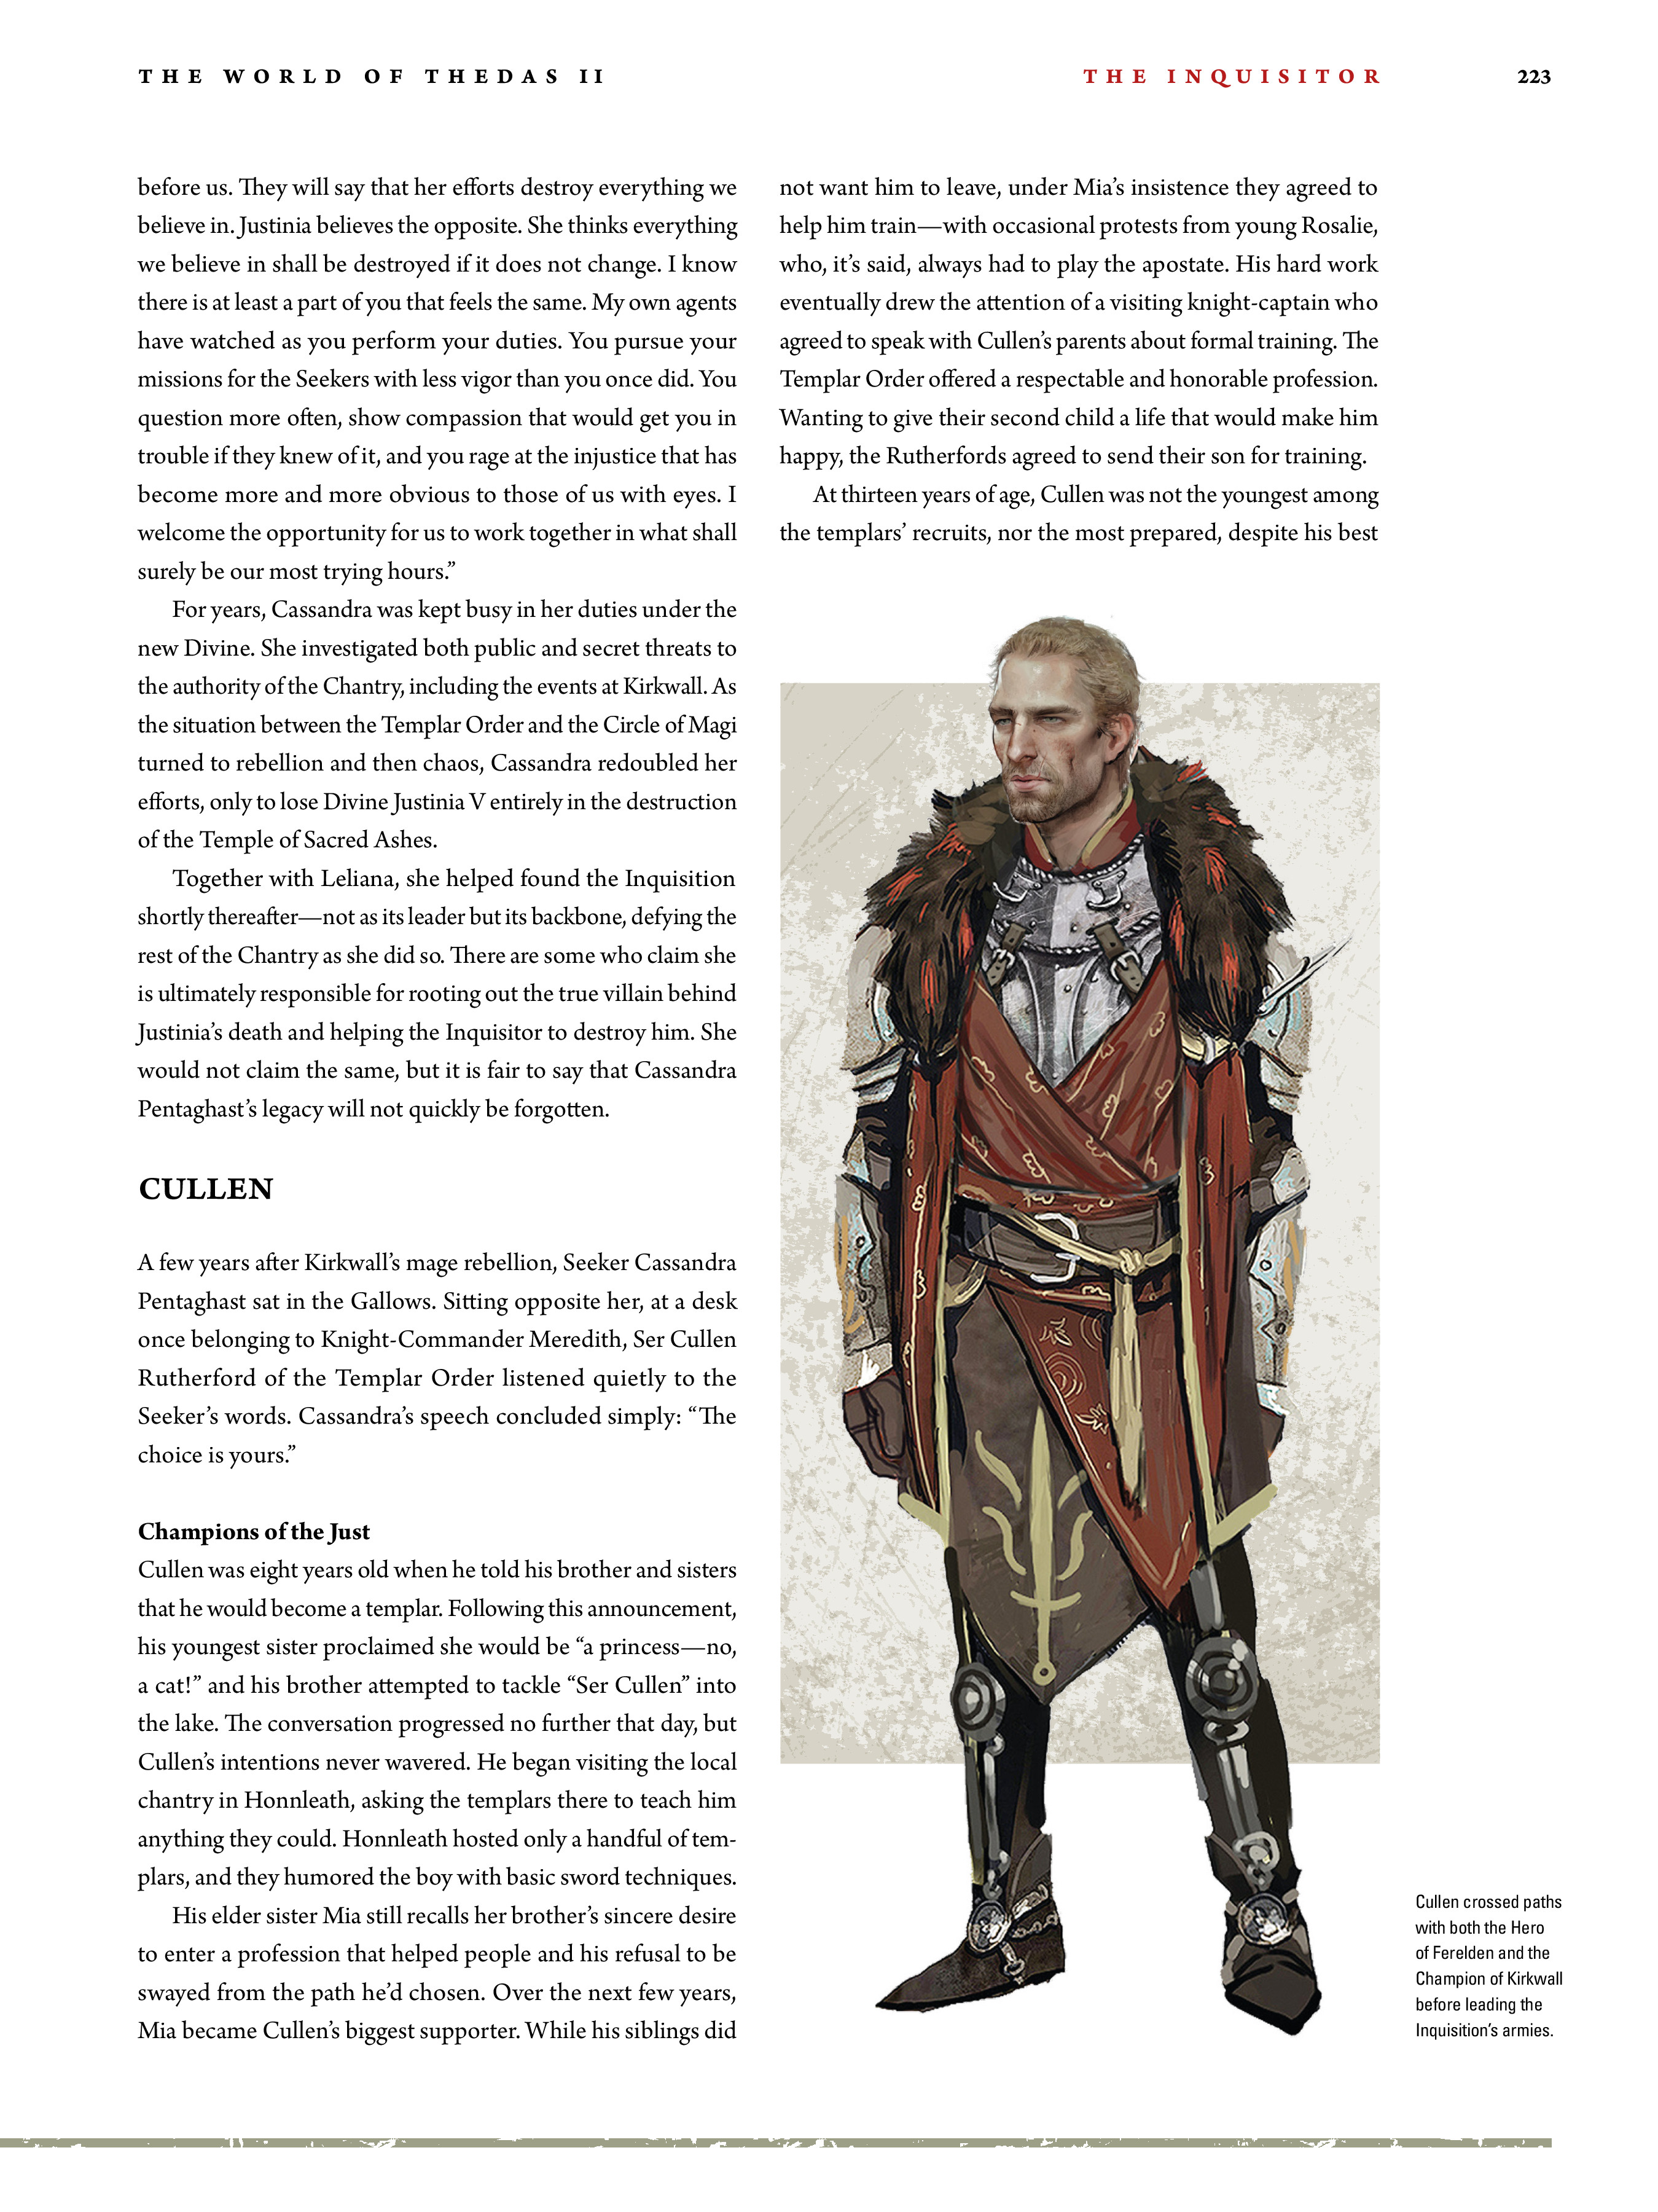 Read online Dragon Age: The World of Thedas comic -  Issue # TPB 2 - 218